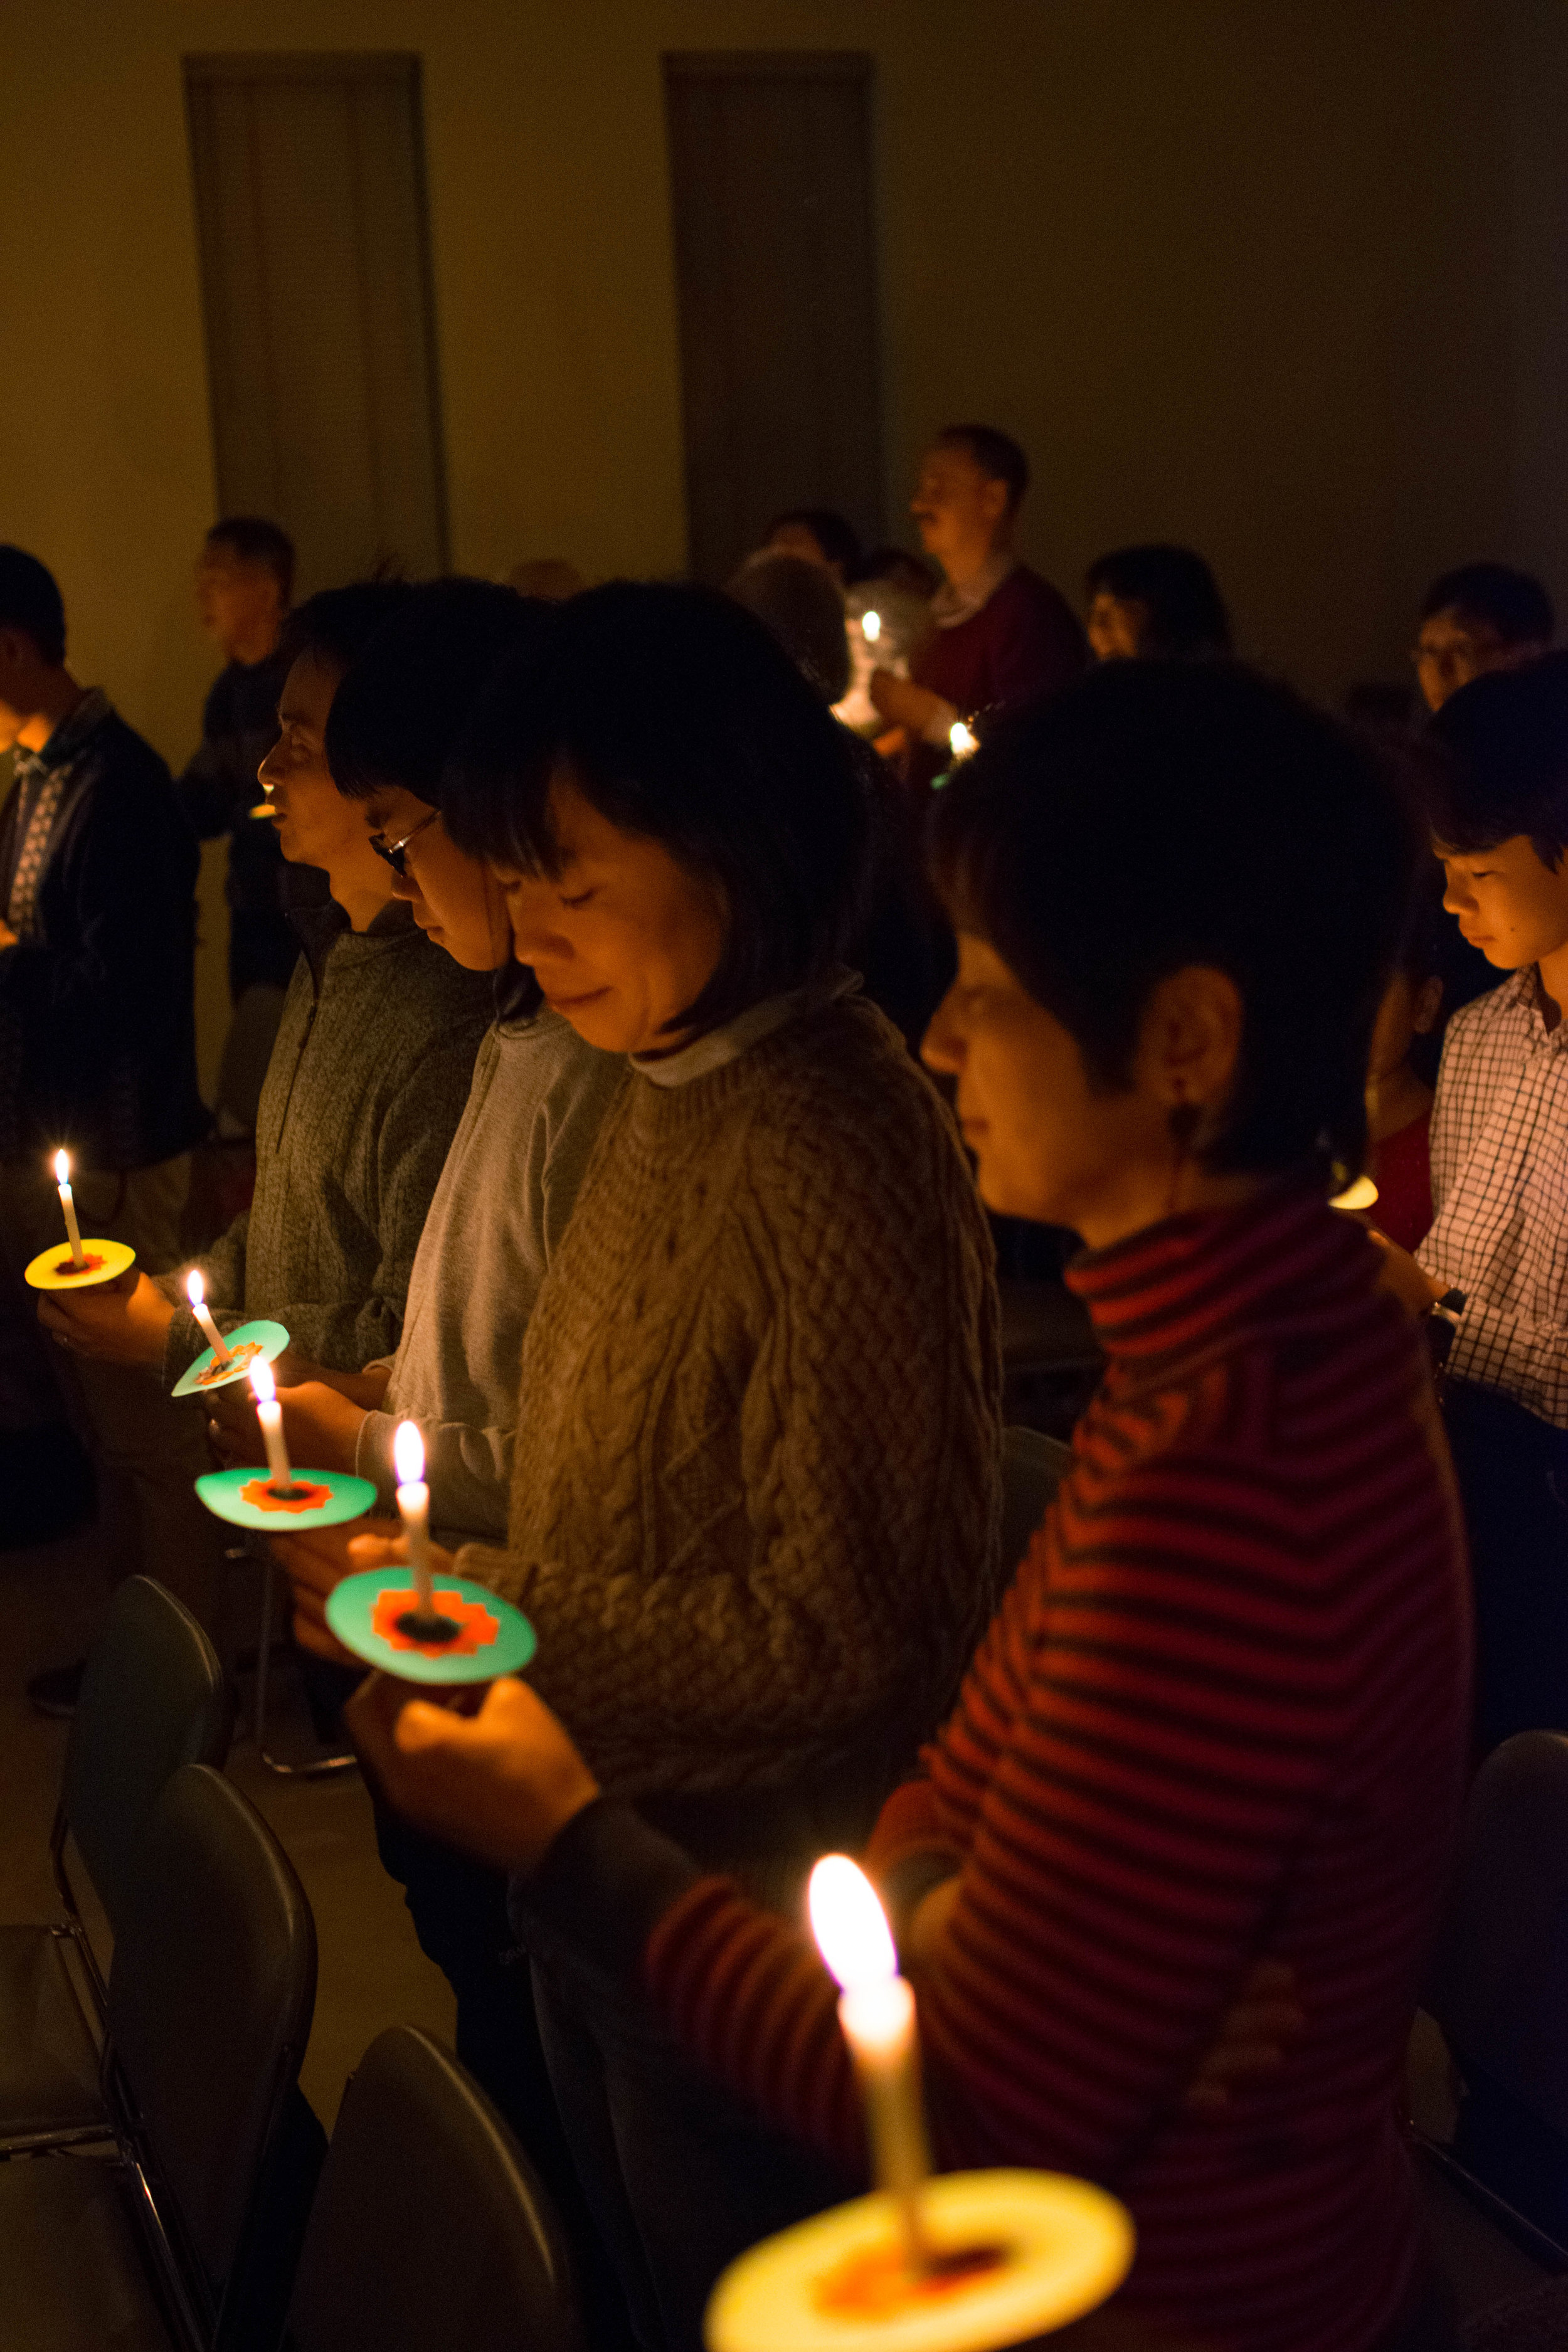 181224Candle-Light039.jpg